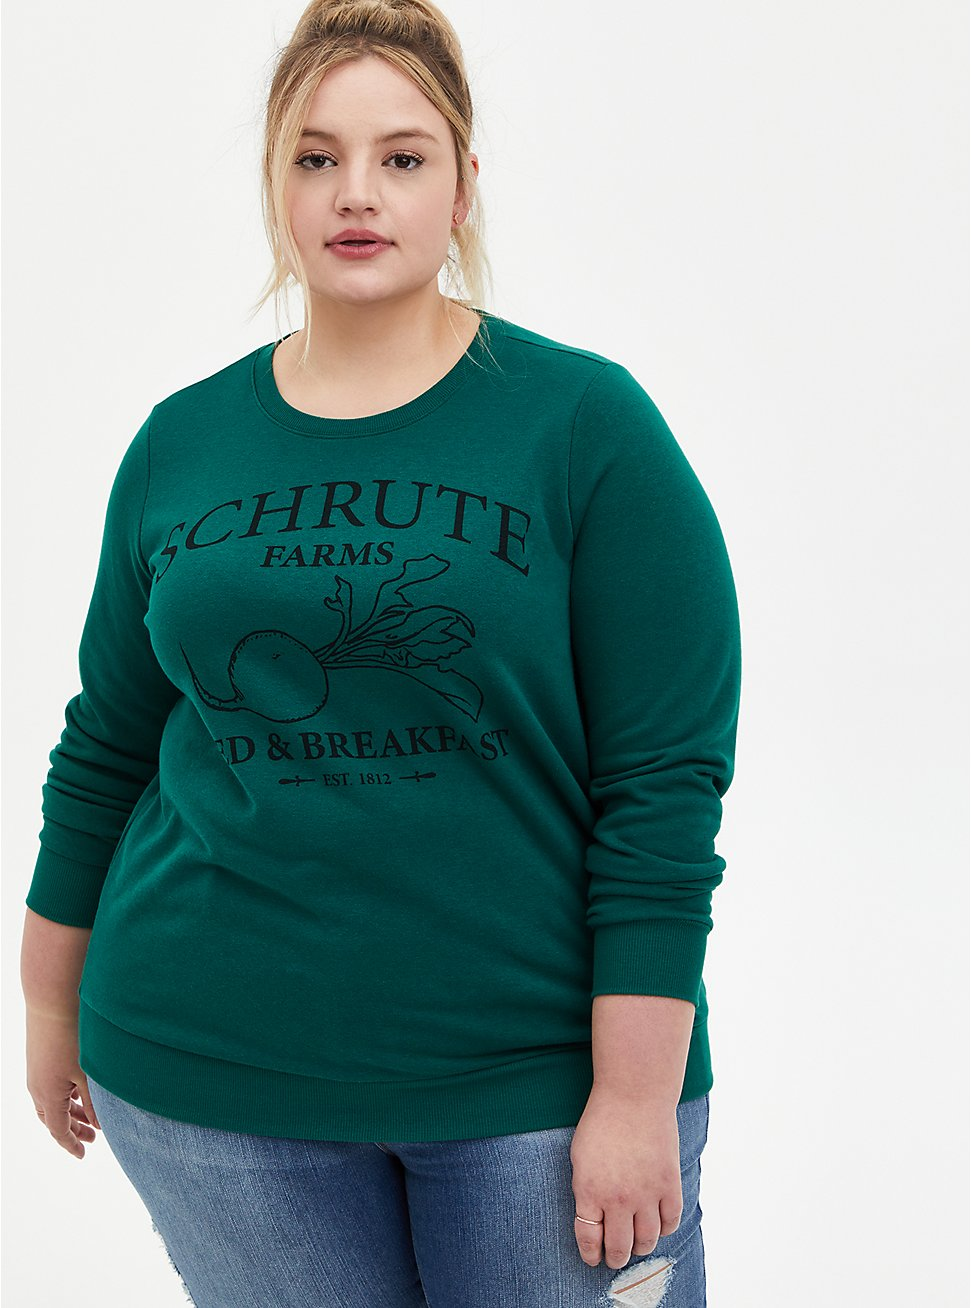 The Office Schrute Farms Green Sweatshirt, , hi-res